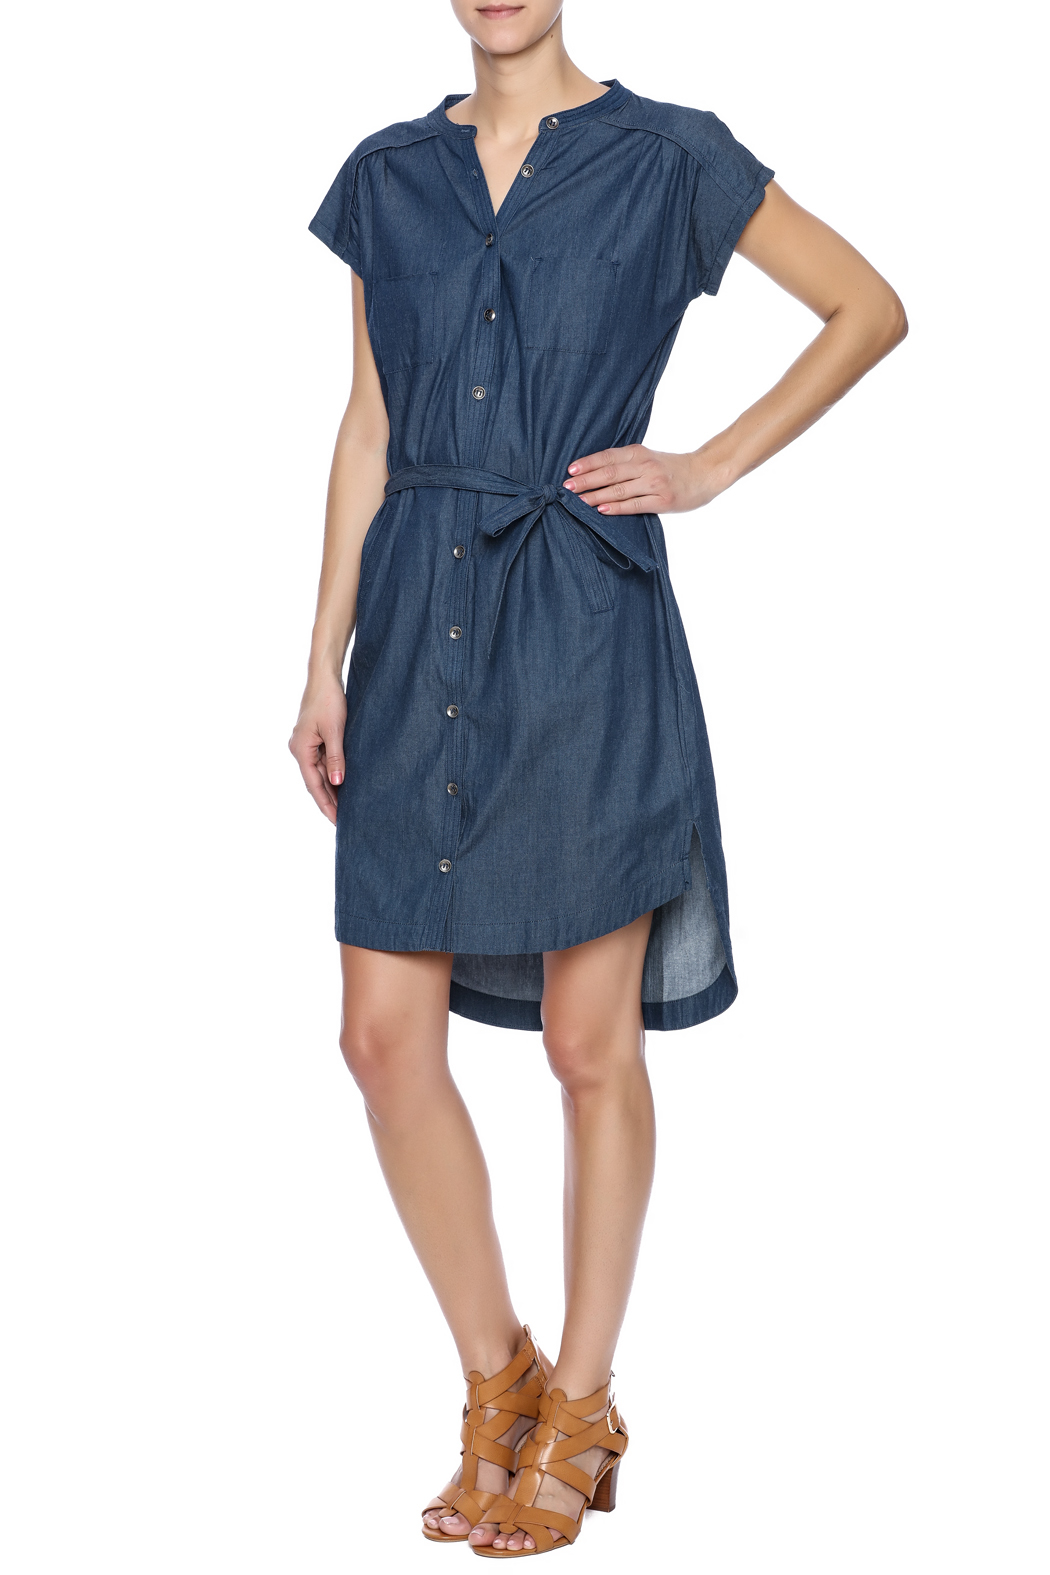 Pink Martini Casual Button Down Dress - Front Full Image